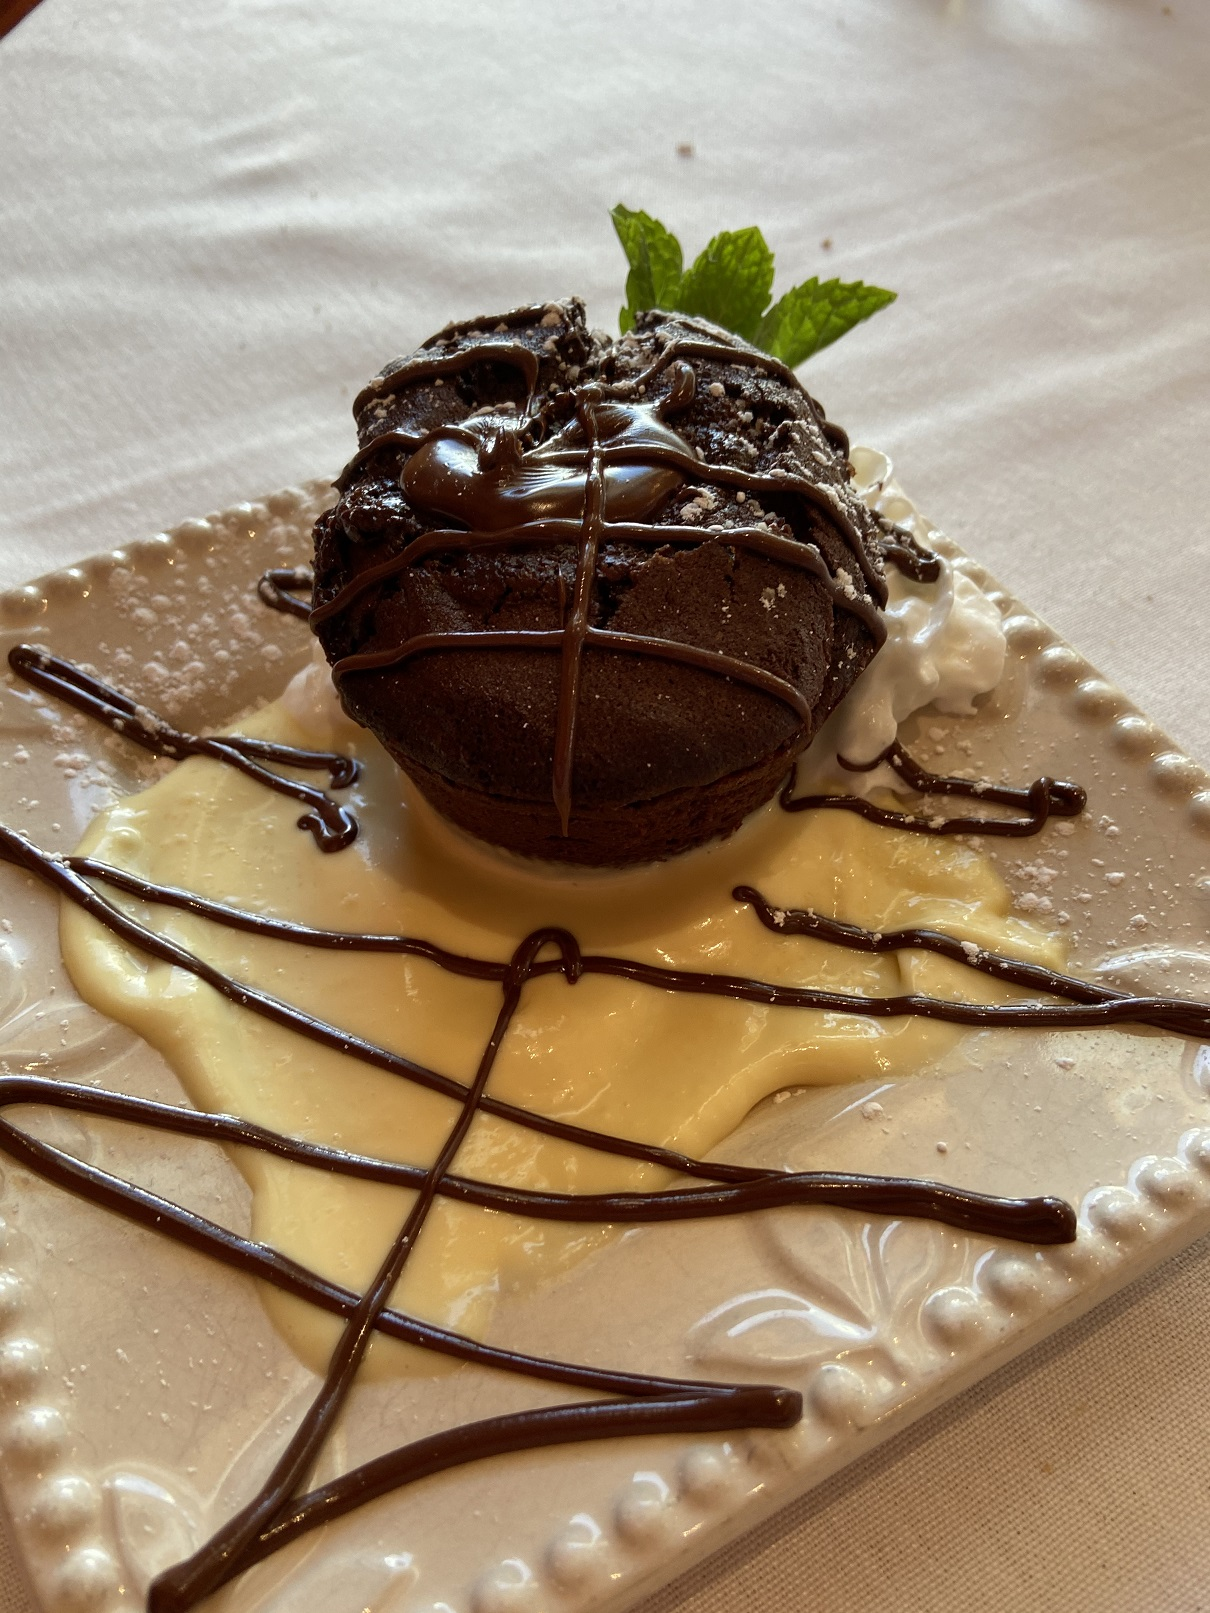 Heart of Darknness chocolate cake at Collins Grill at the Alta Ski Resort